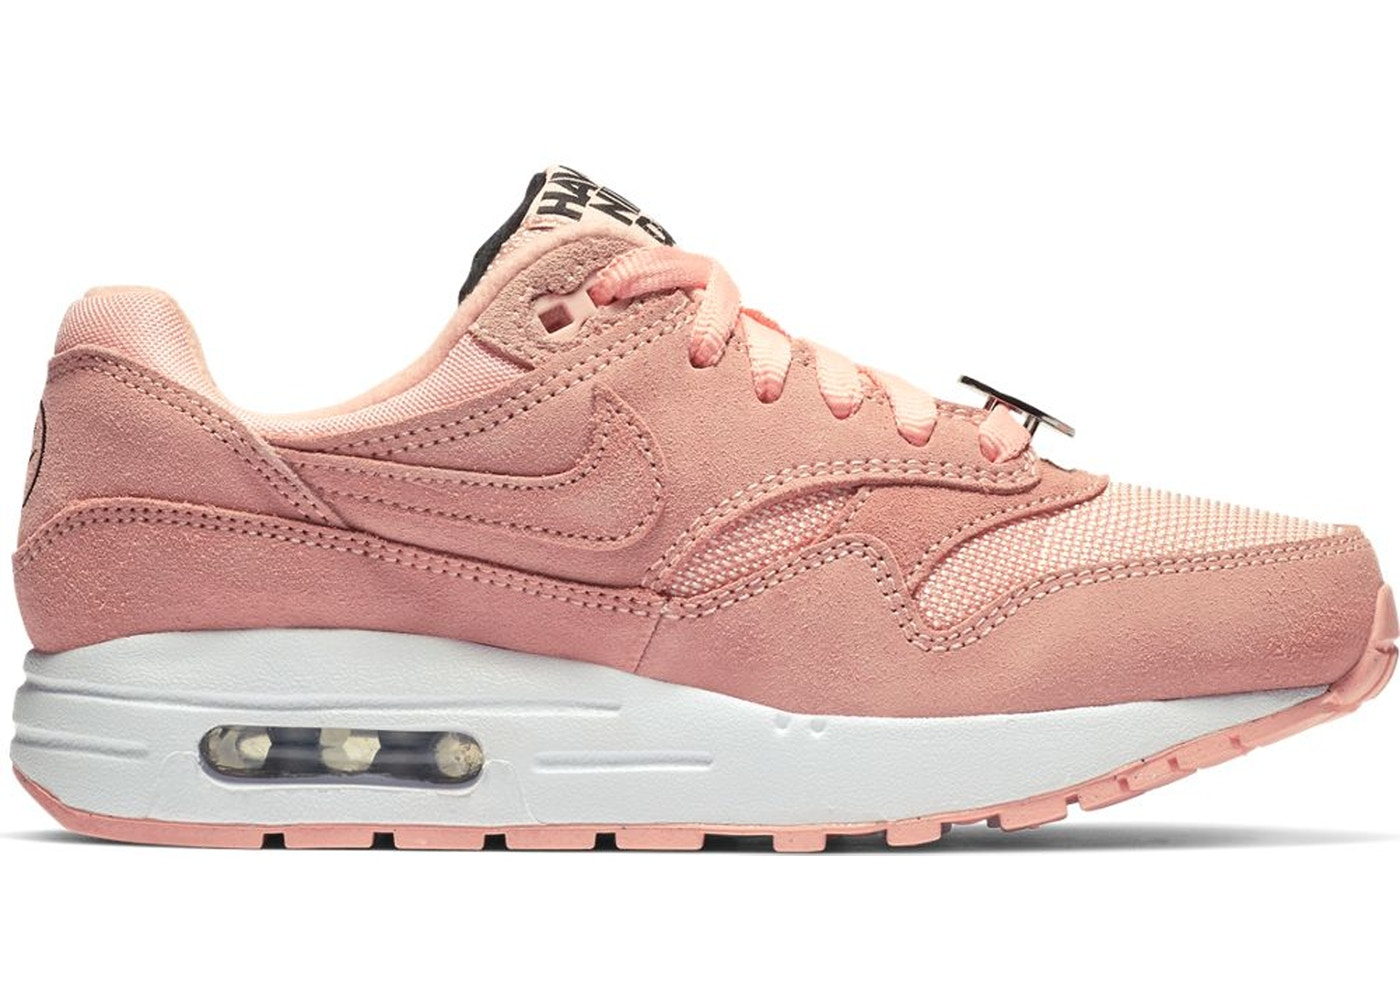 Air Nike Bleached Max Have 1 Day A Coralgs 8wOk0PXNn